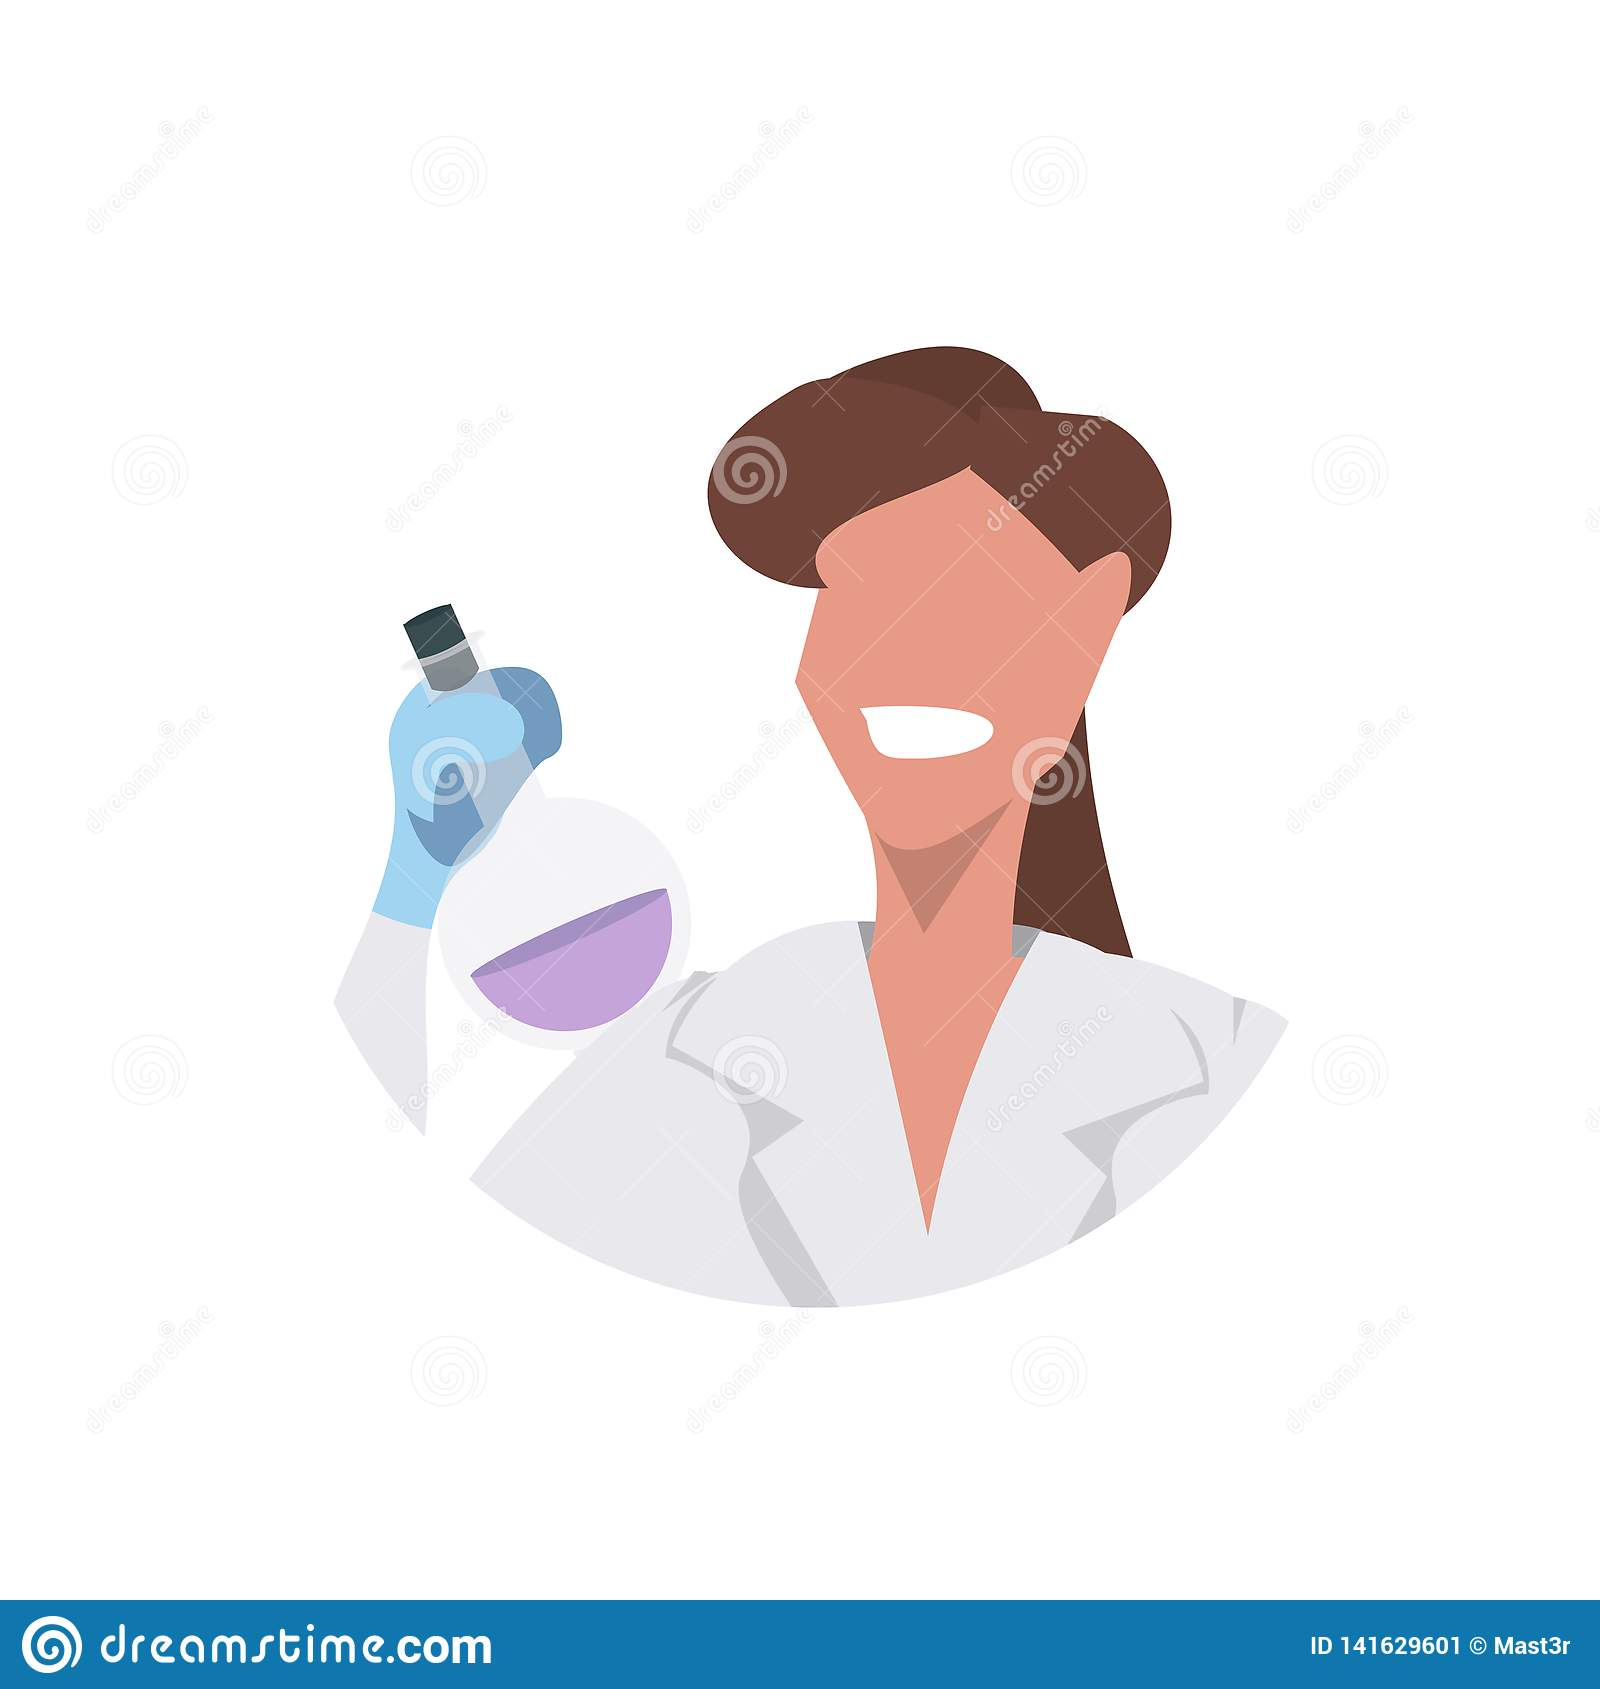 Female Scientist Holding Test Tube Face Avatar Woman Laboratory Technician In White Uniform Medical Worker Professional Stock Vector Illustration Of Laboratory Lifestyle 141629601